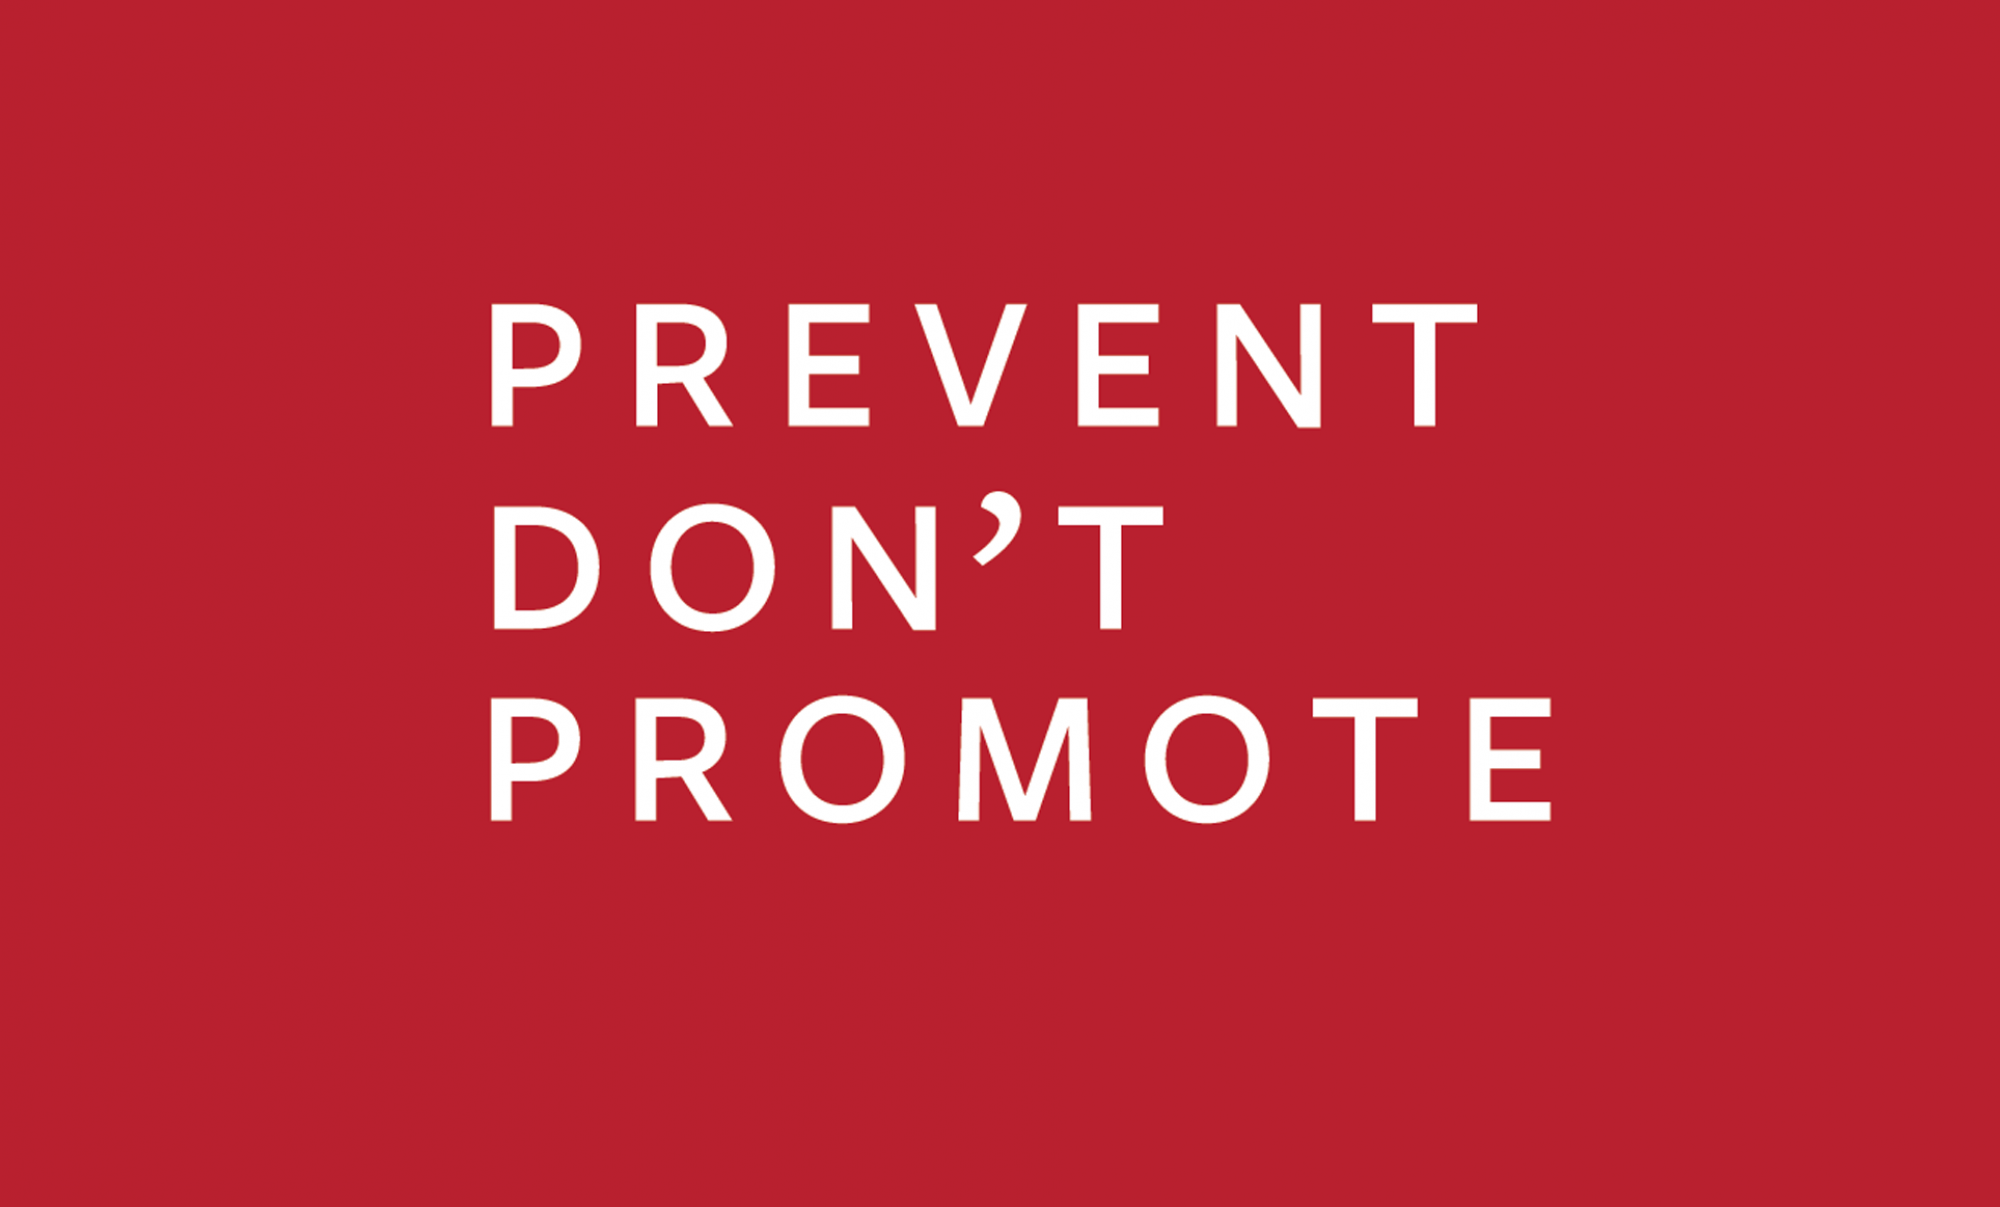 Prevent Don't Promote